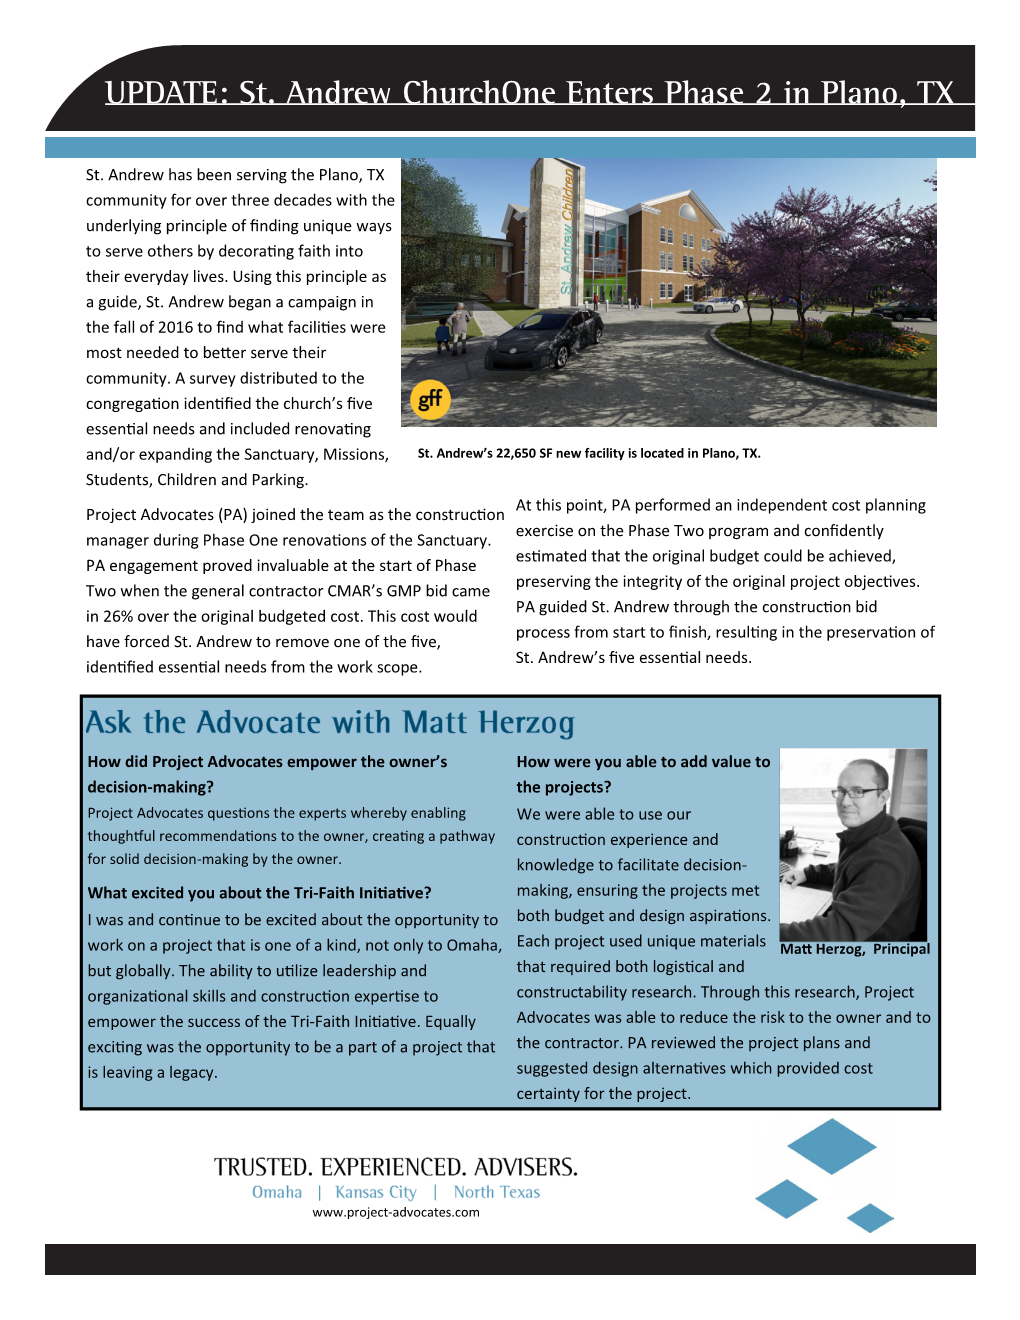 PA NEWSLETTER-8.19-SINGLE PGS Page 004.png